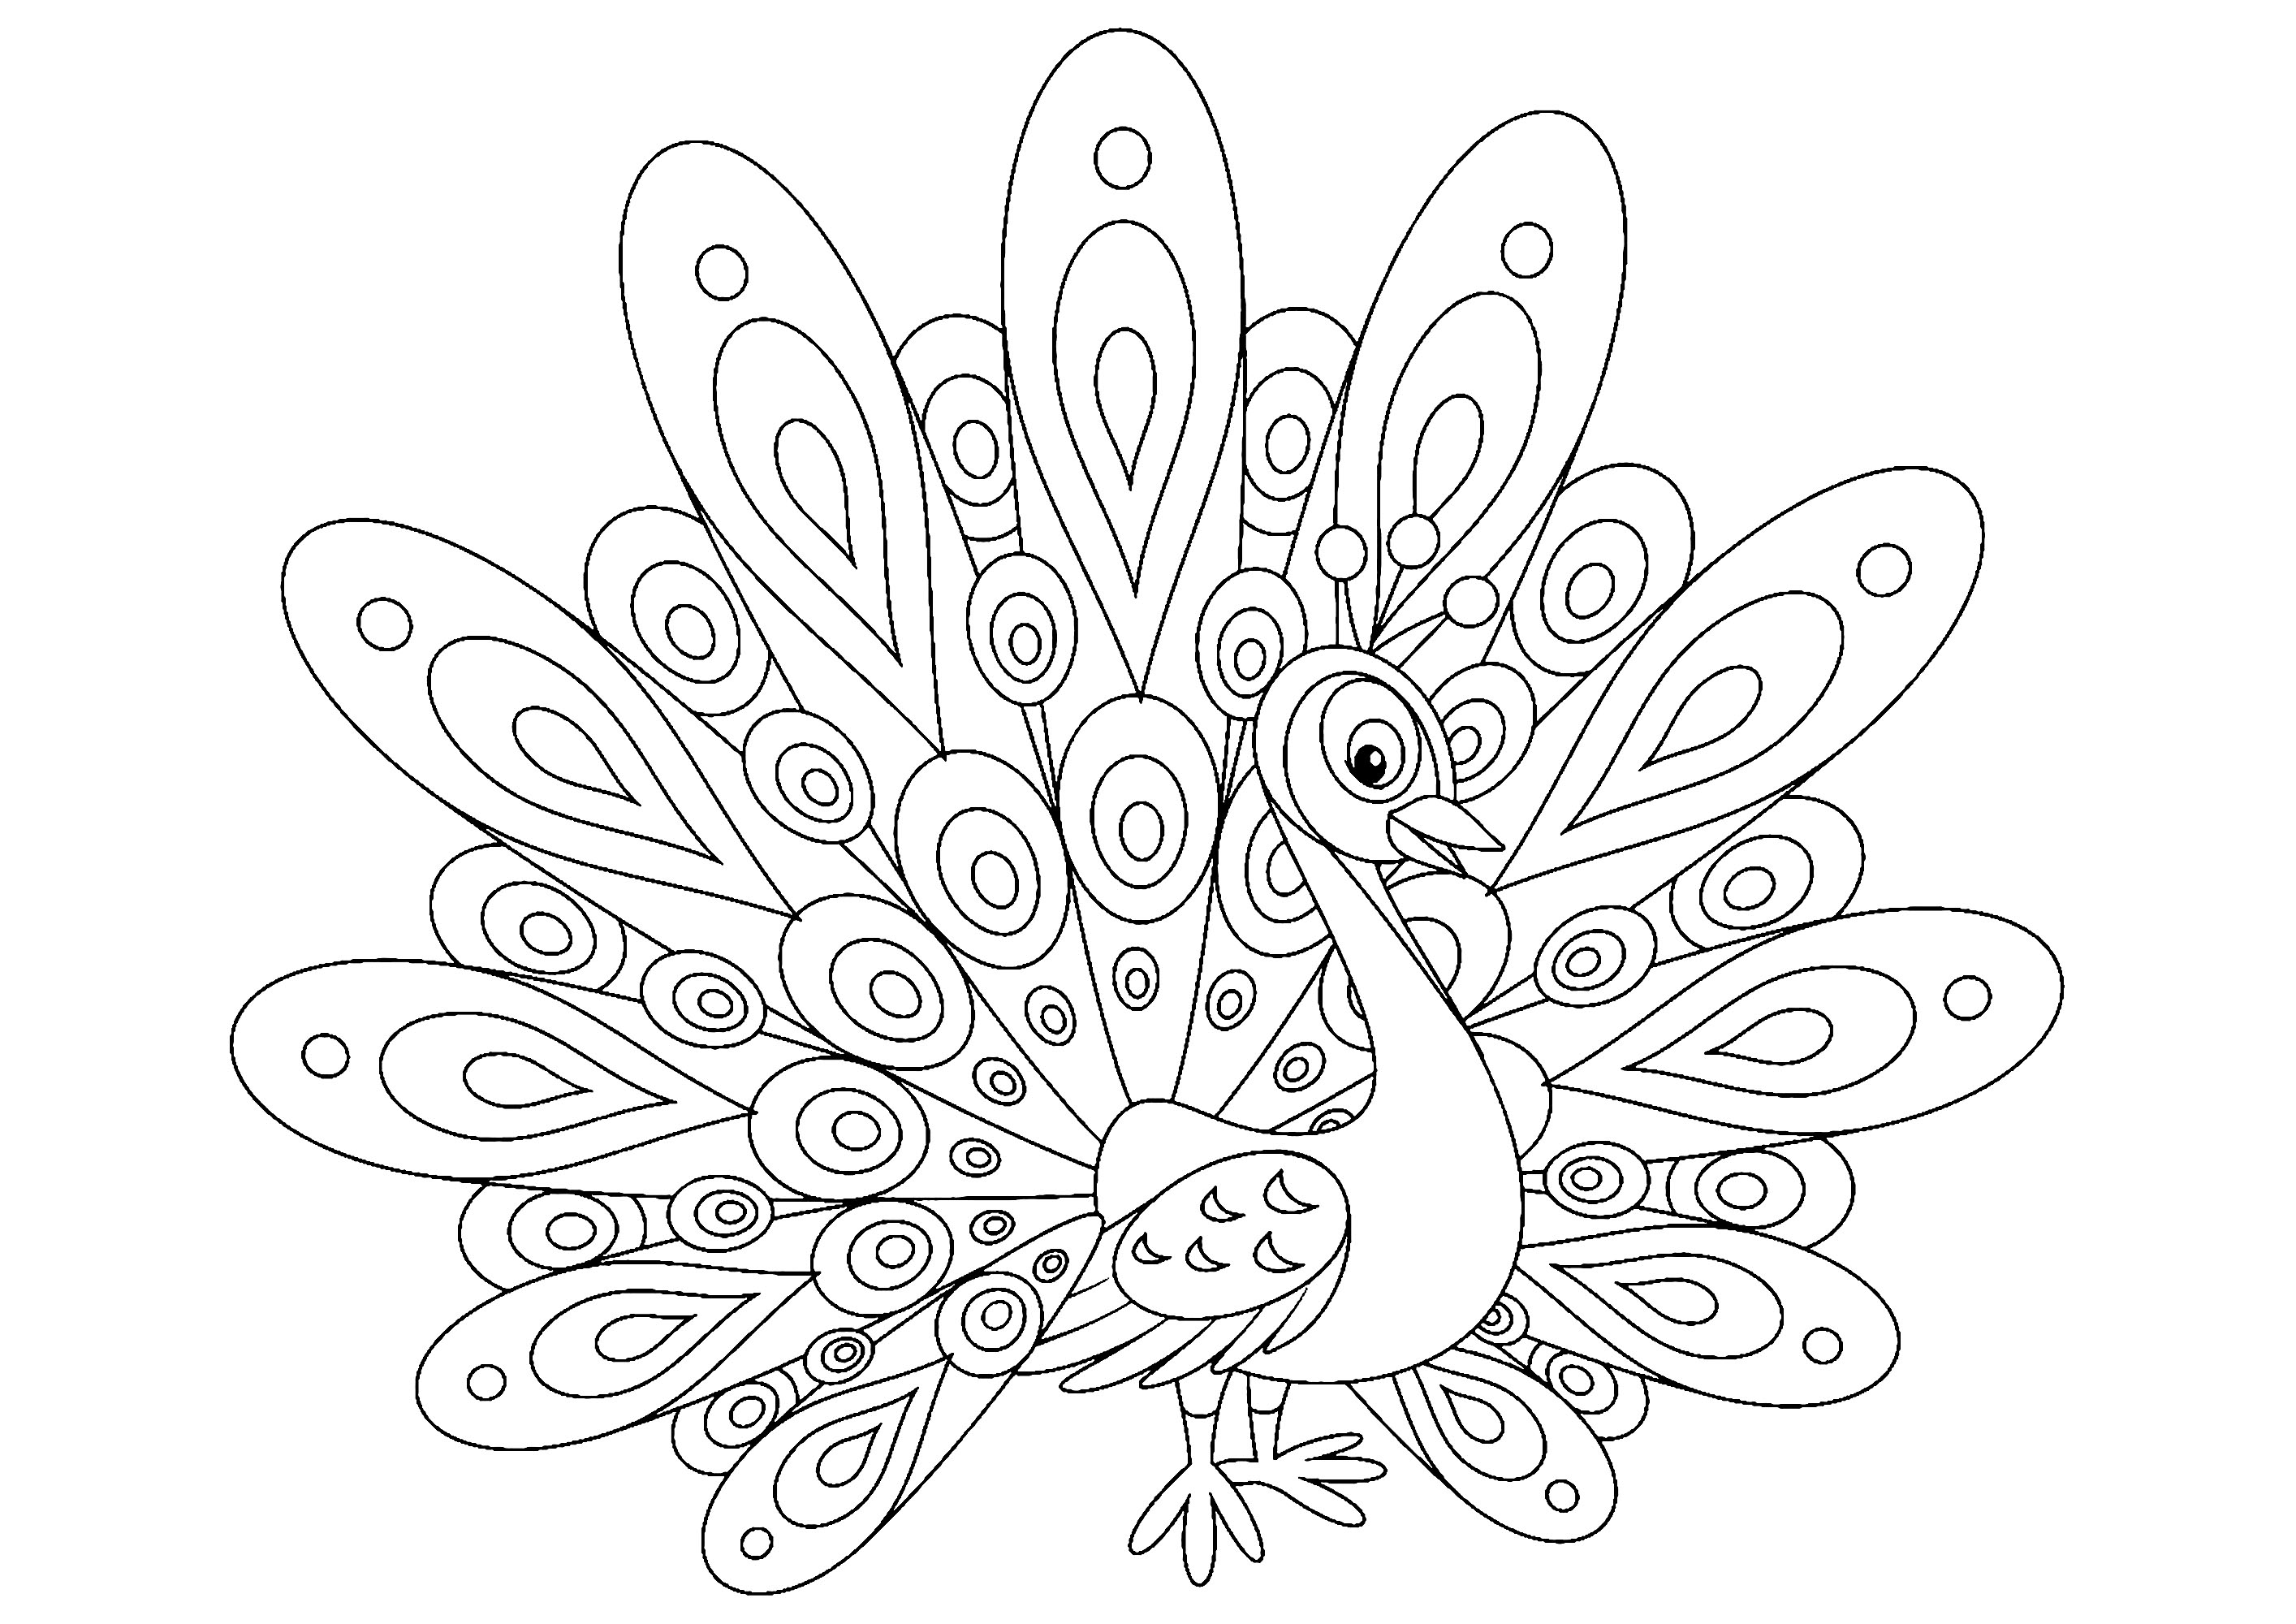 Color this simple peacock